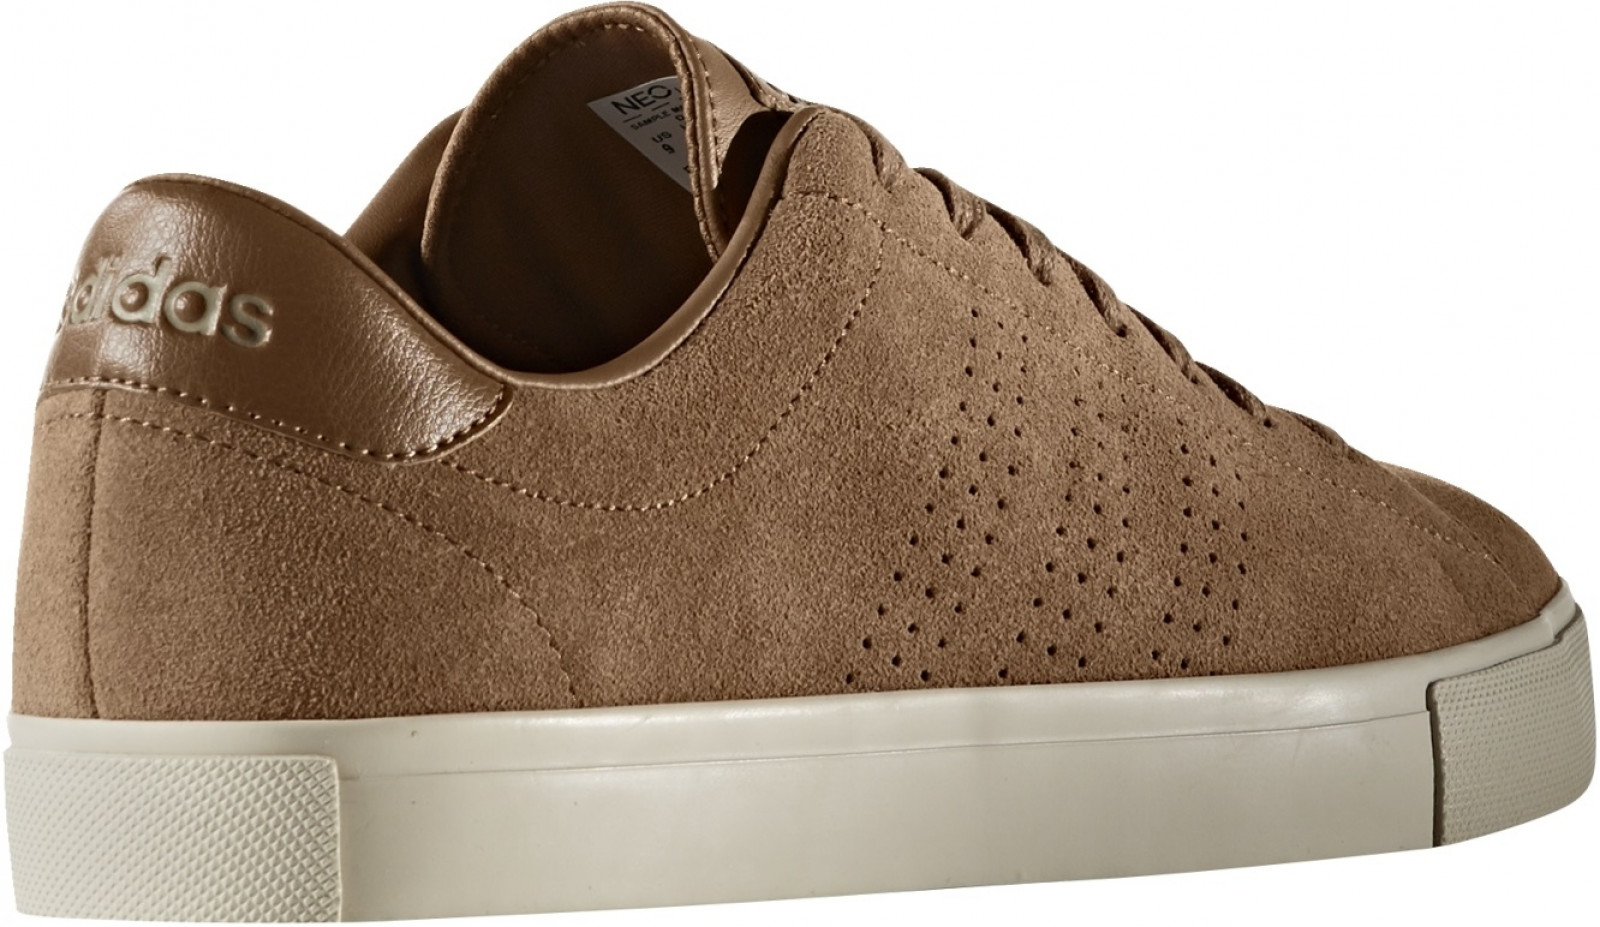 Adidas Neo Shoes DAILY LINE Brown